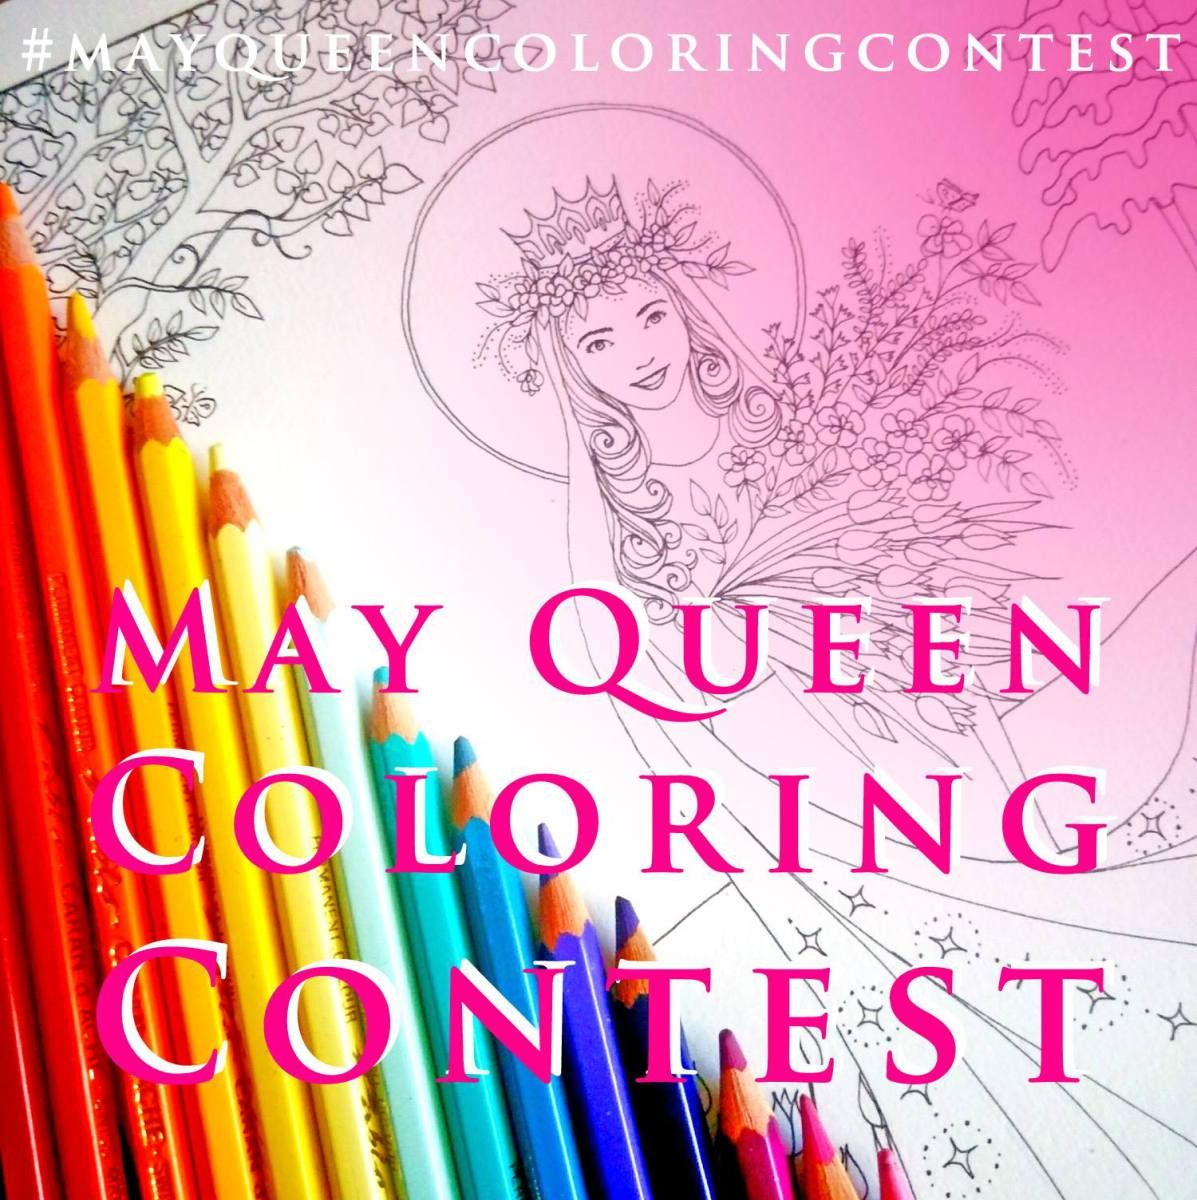 May Queen Coloring Contest! | Catholic art